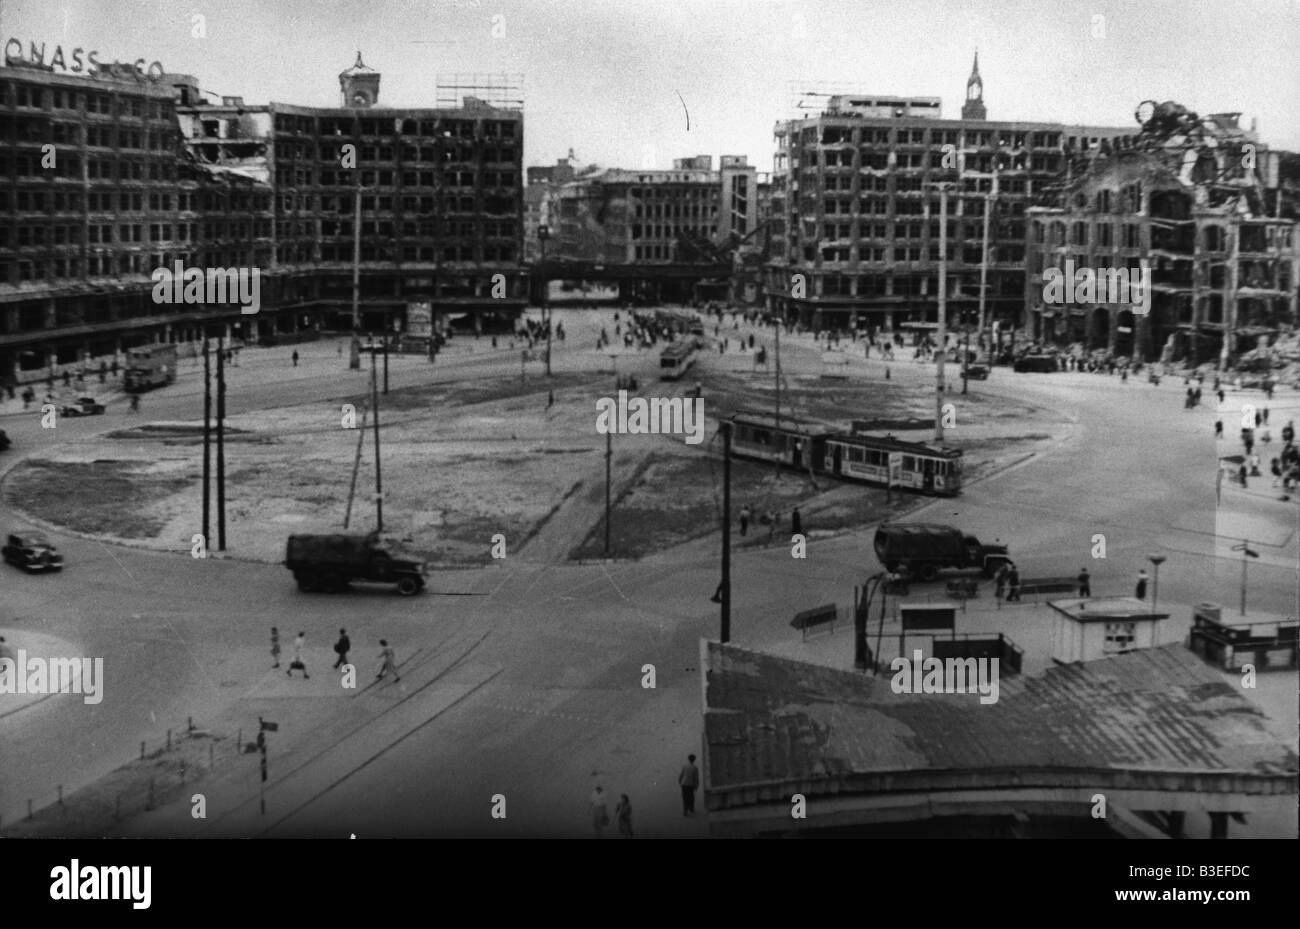 Berlin, Alexanderplatz / Photo 1946